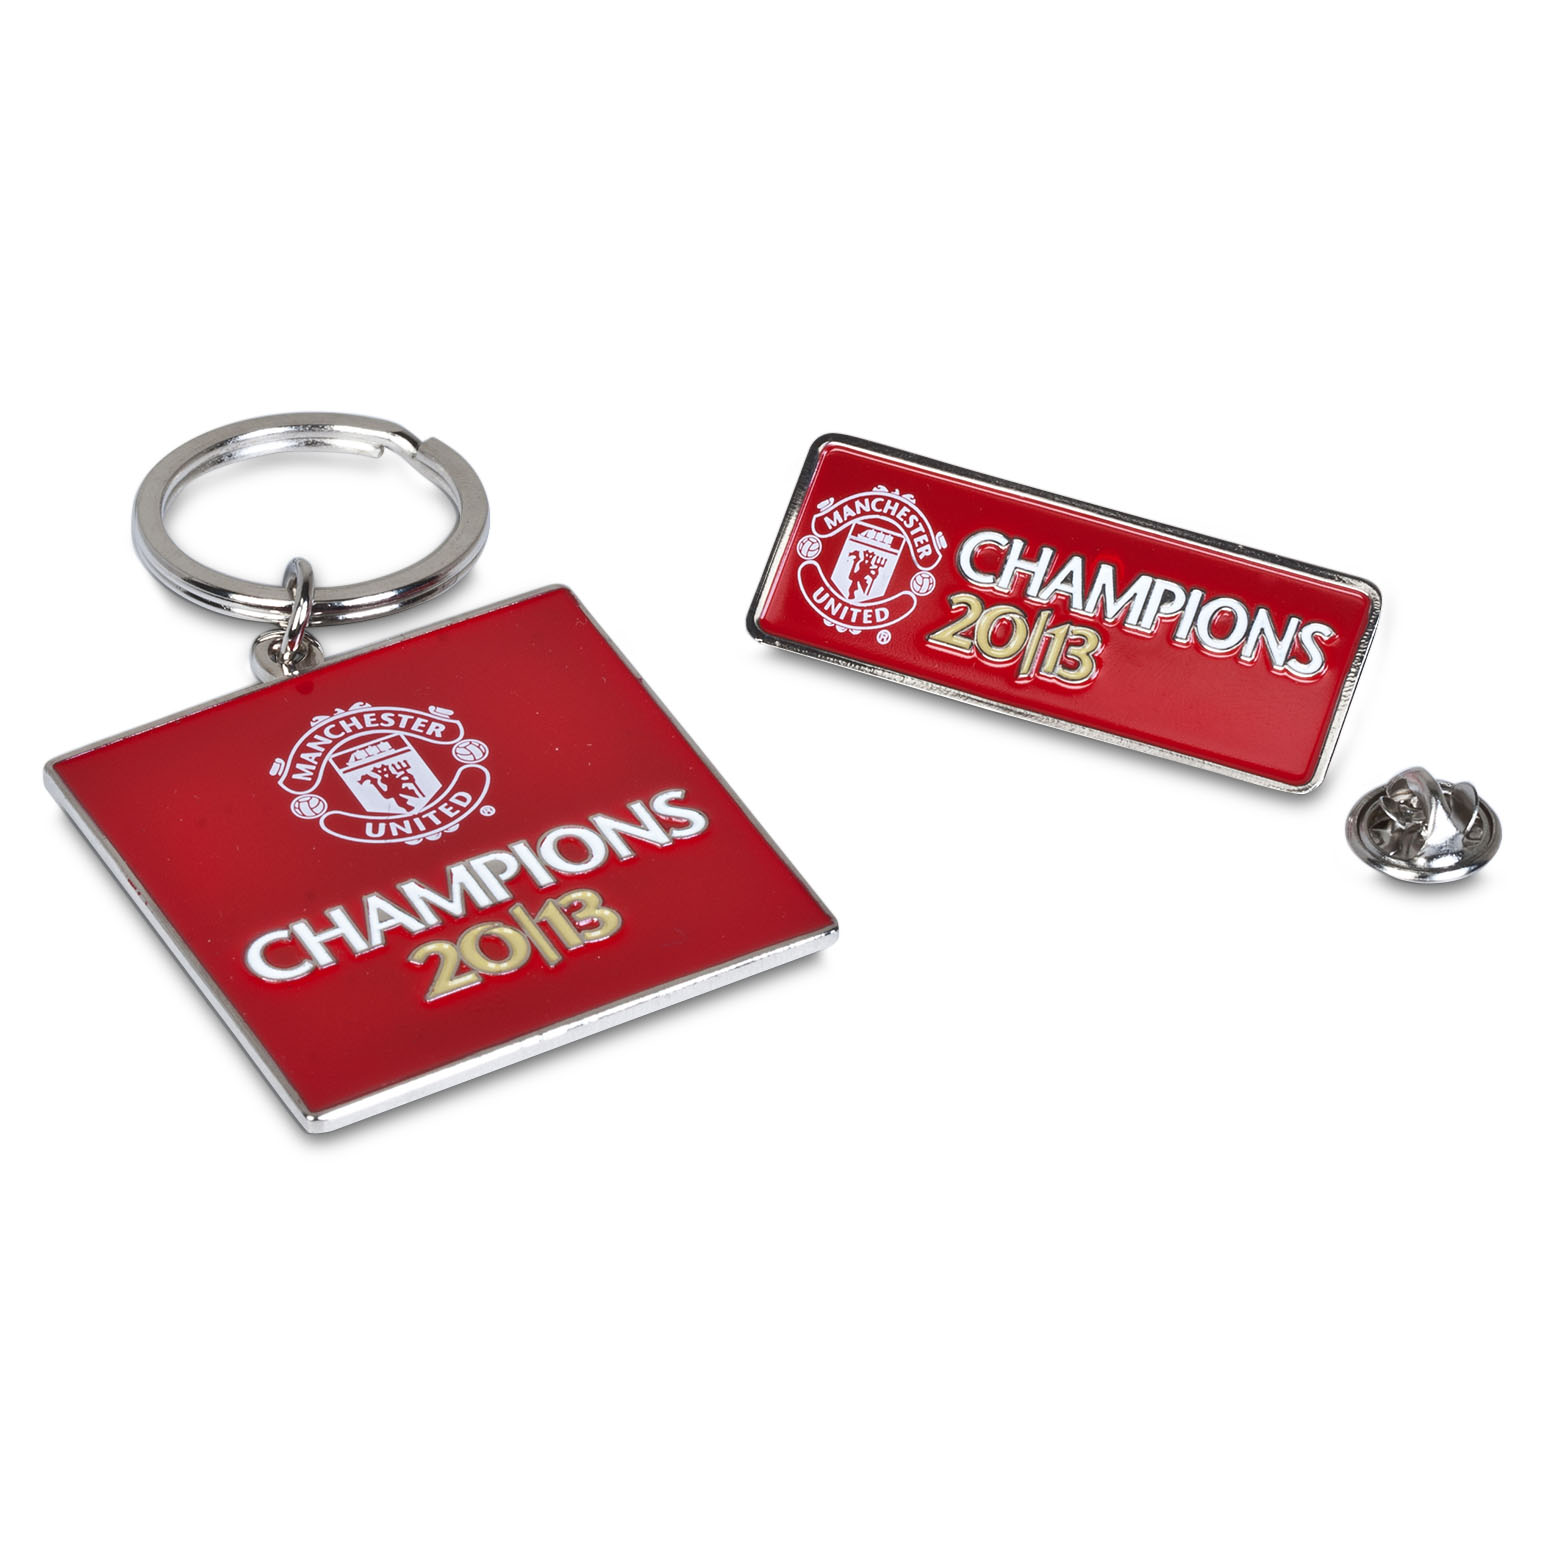 Manchester United Champions 2013 Metal Keyring & Badge Set